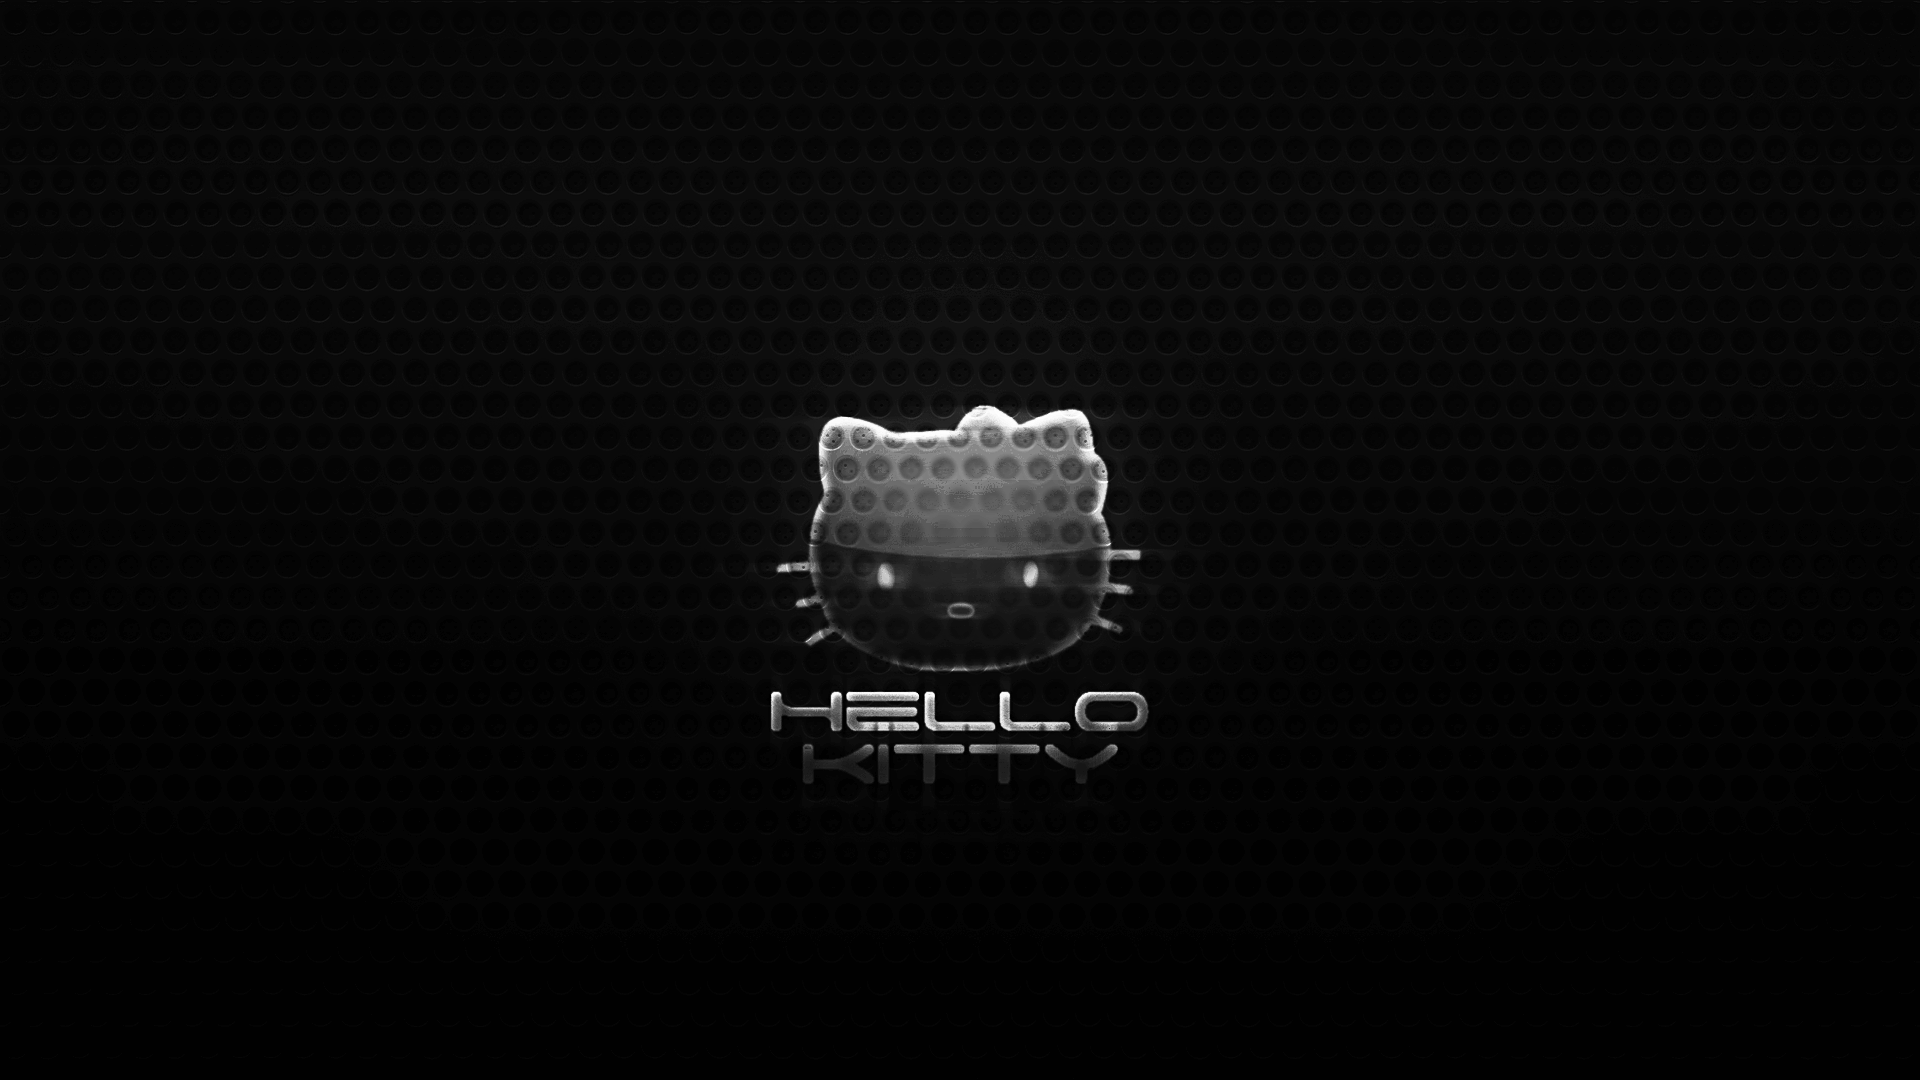 Go Back Images For Hello I Am Your Wallpaper 1920x1080